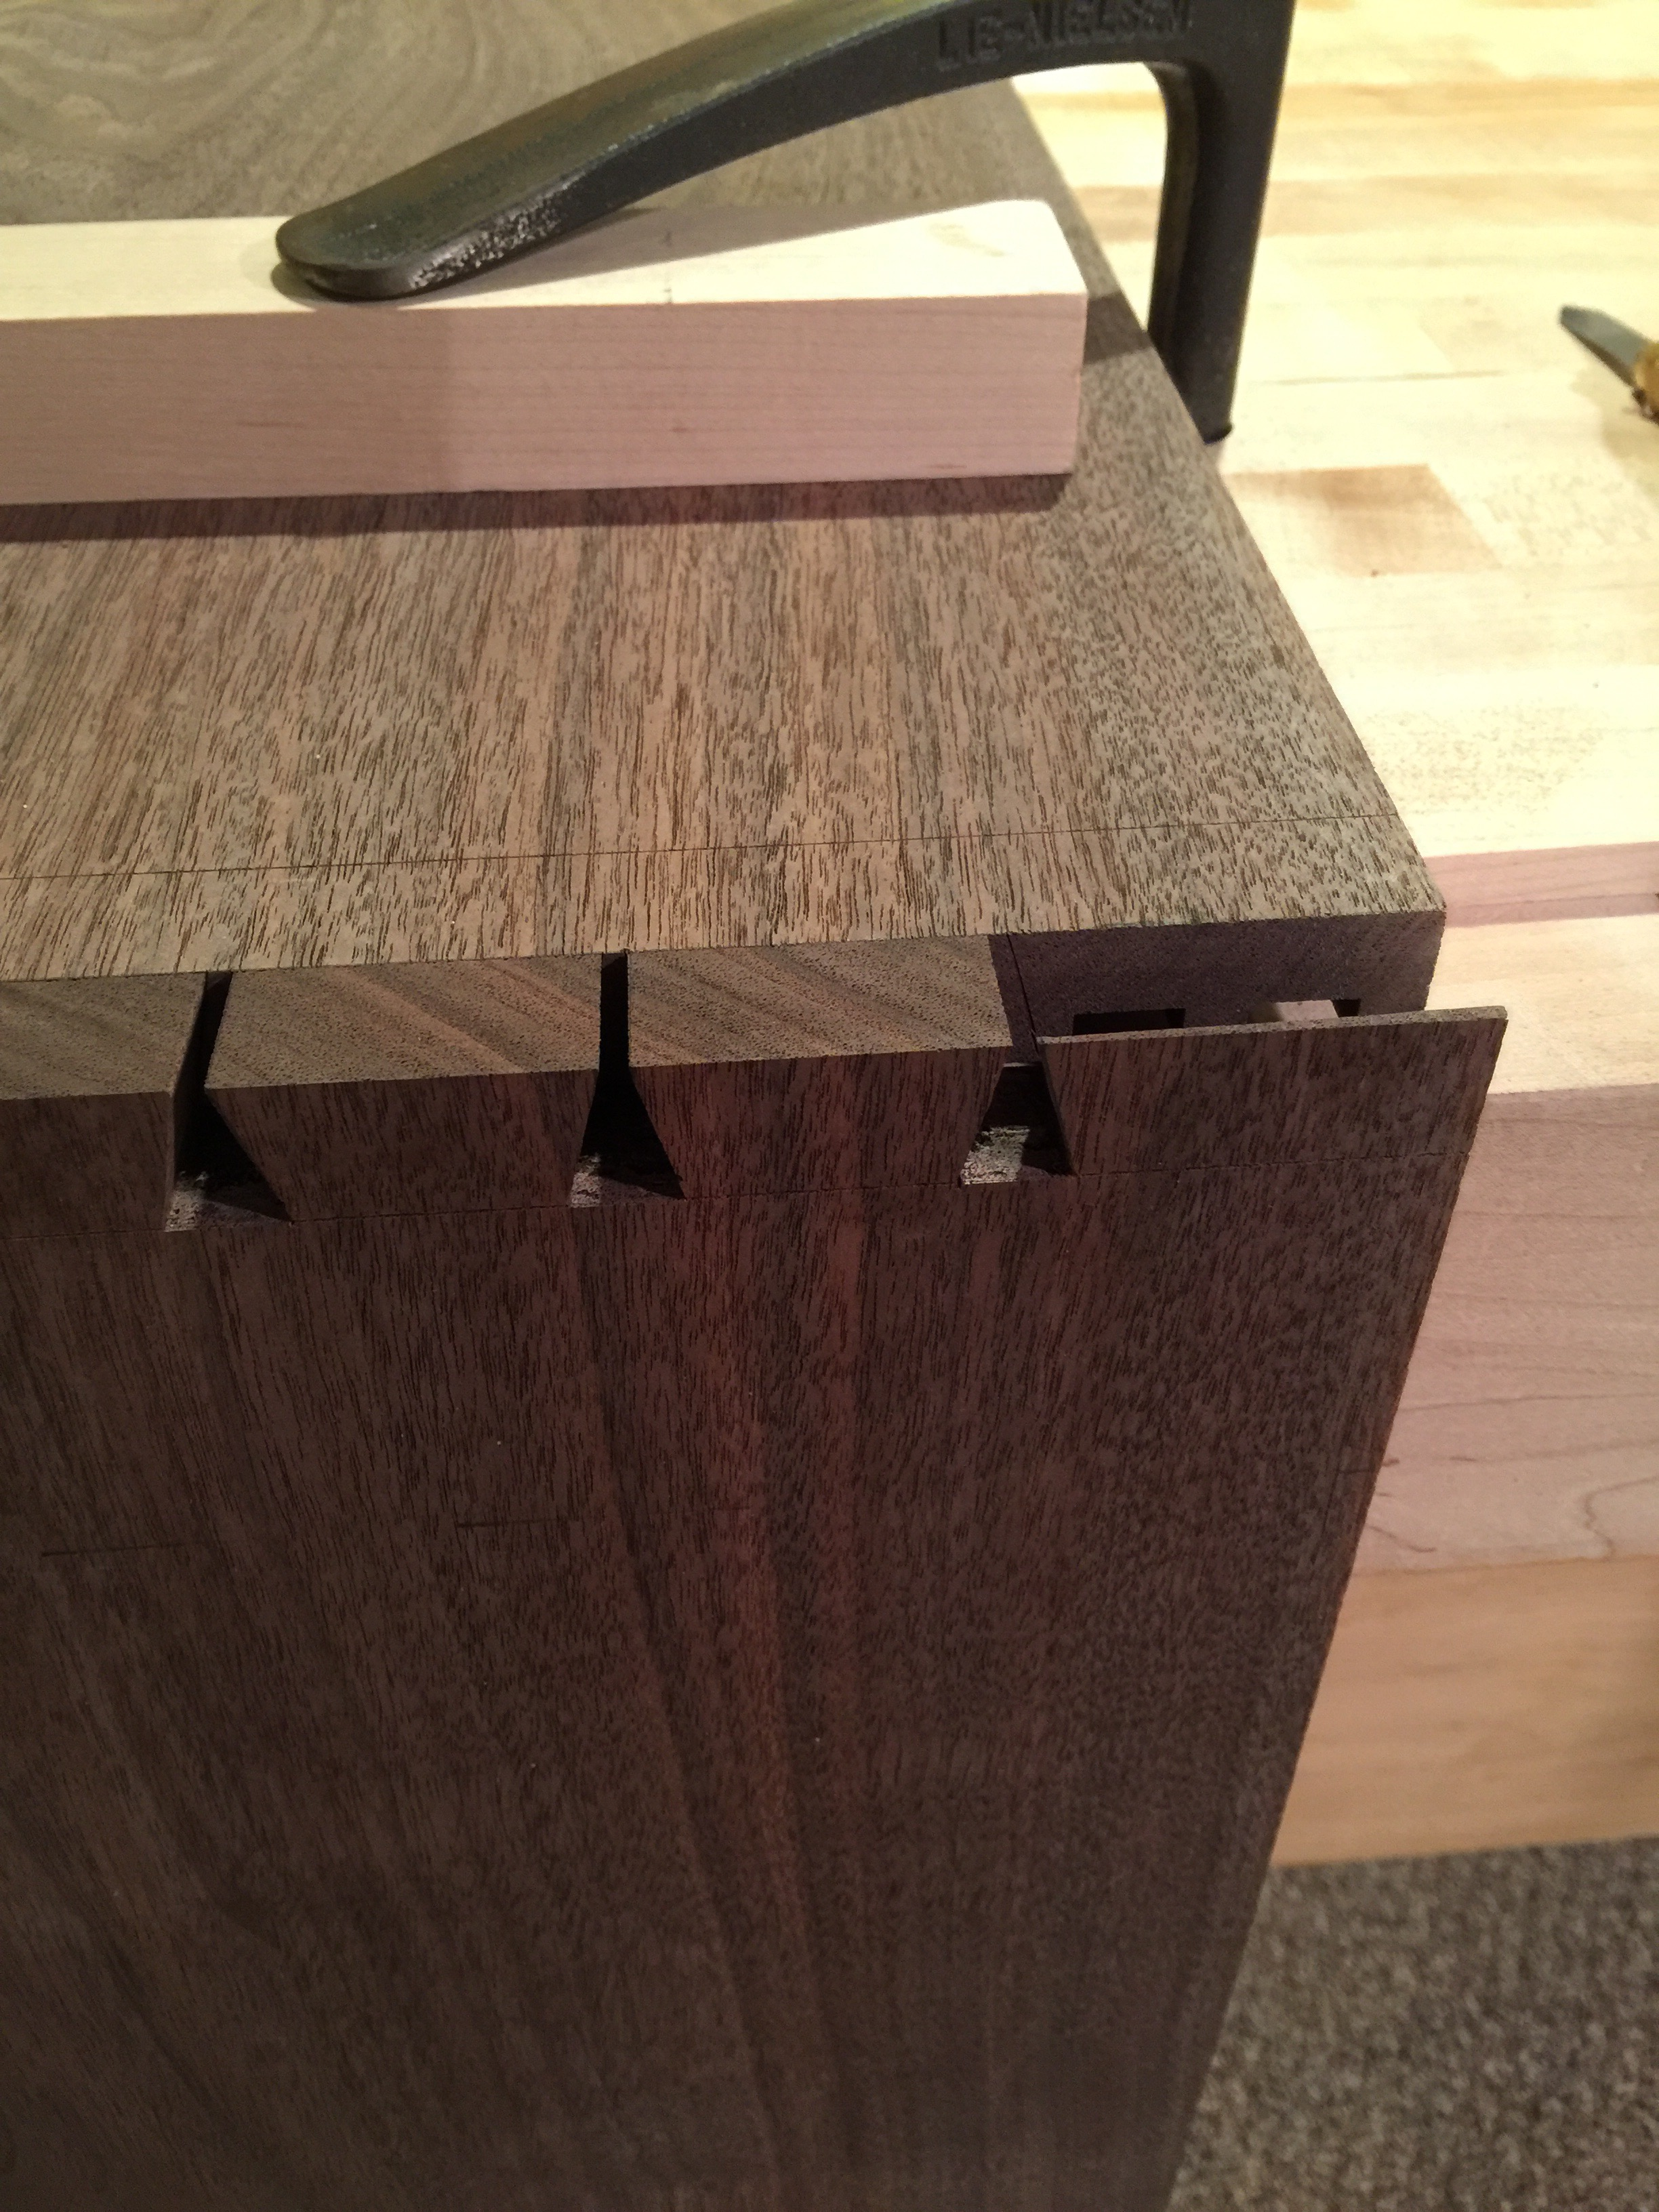 The Floating Credenza – Dovetails